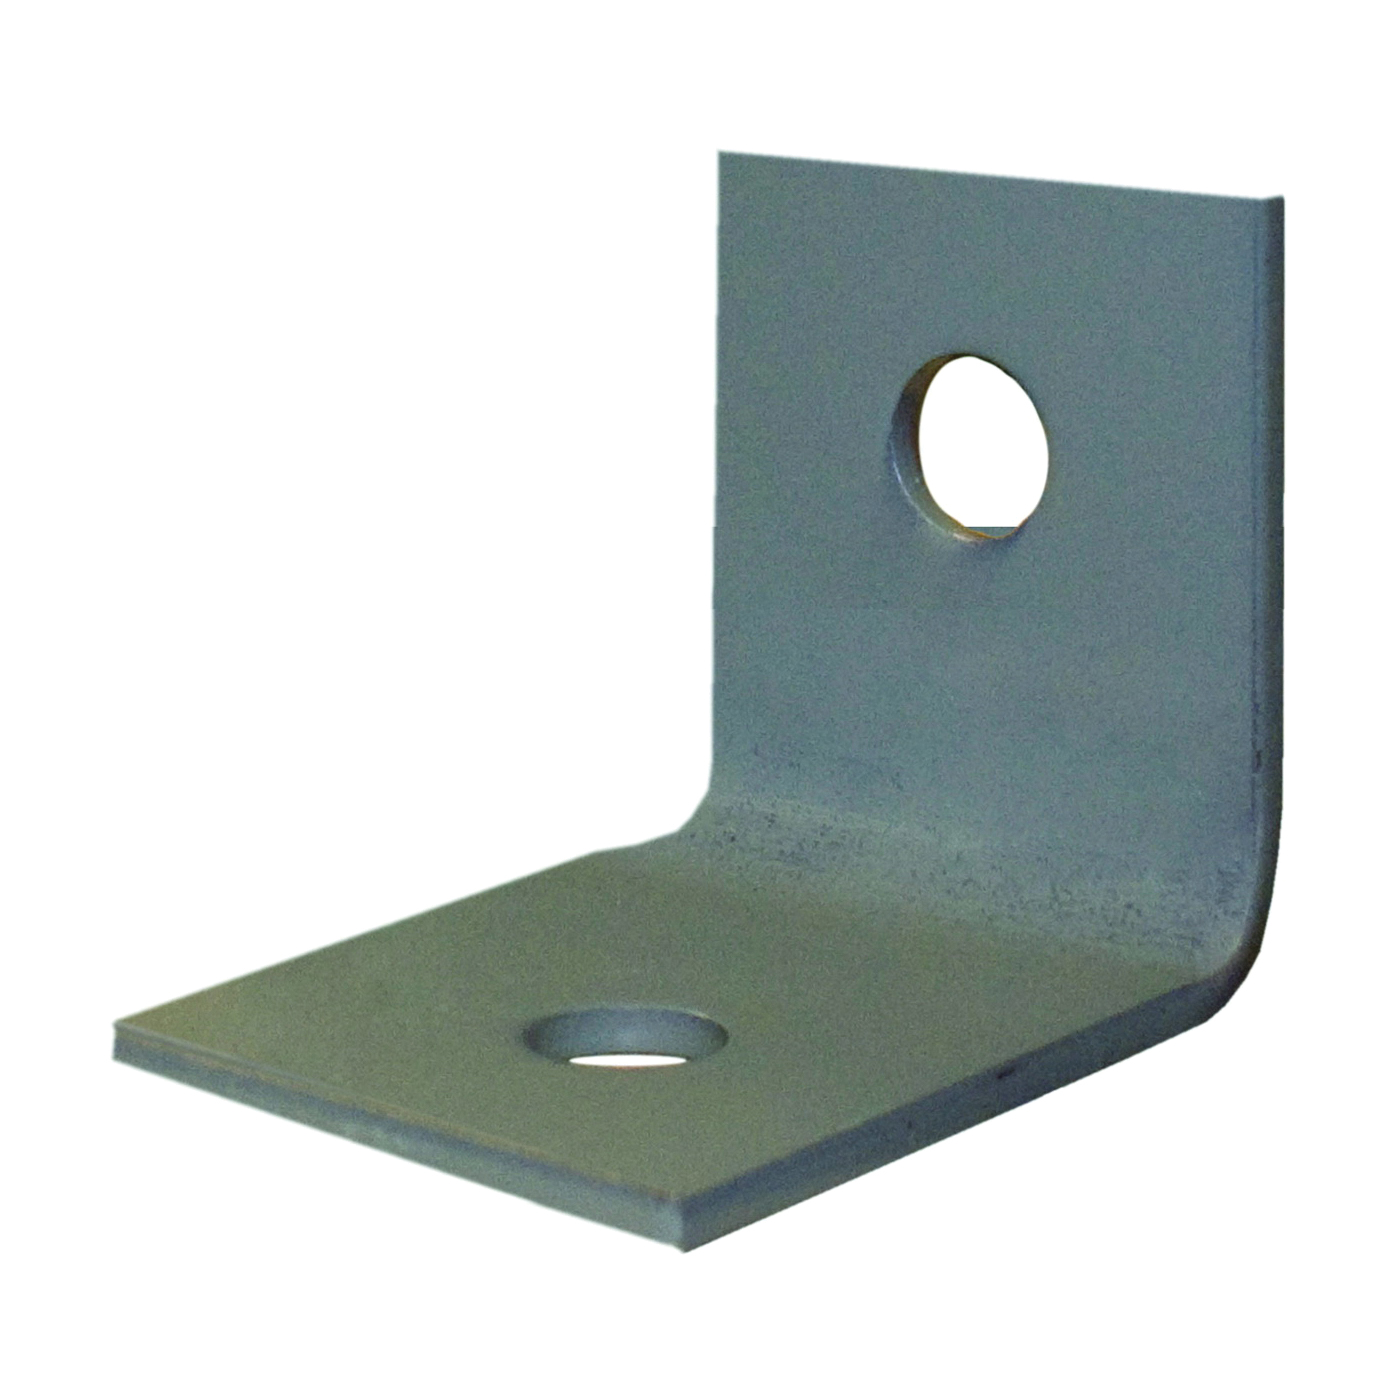 Picture of MiTek KHL33 Joist Angle, 2-1/2 in W, 3-1/4 in D, Steel, USP Primer